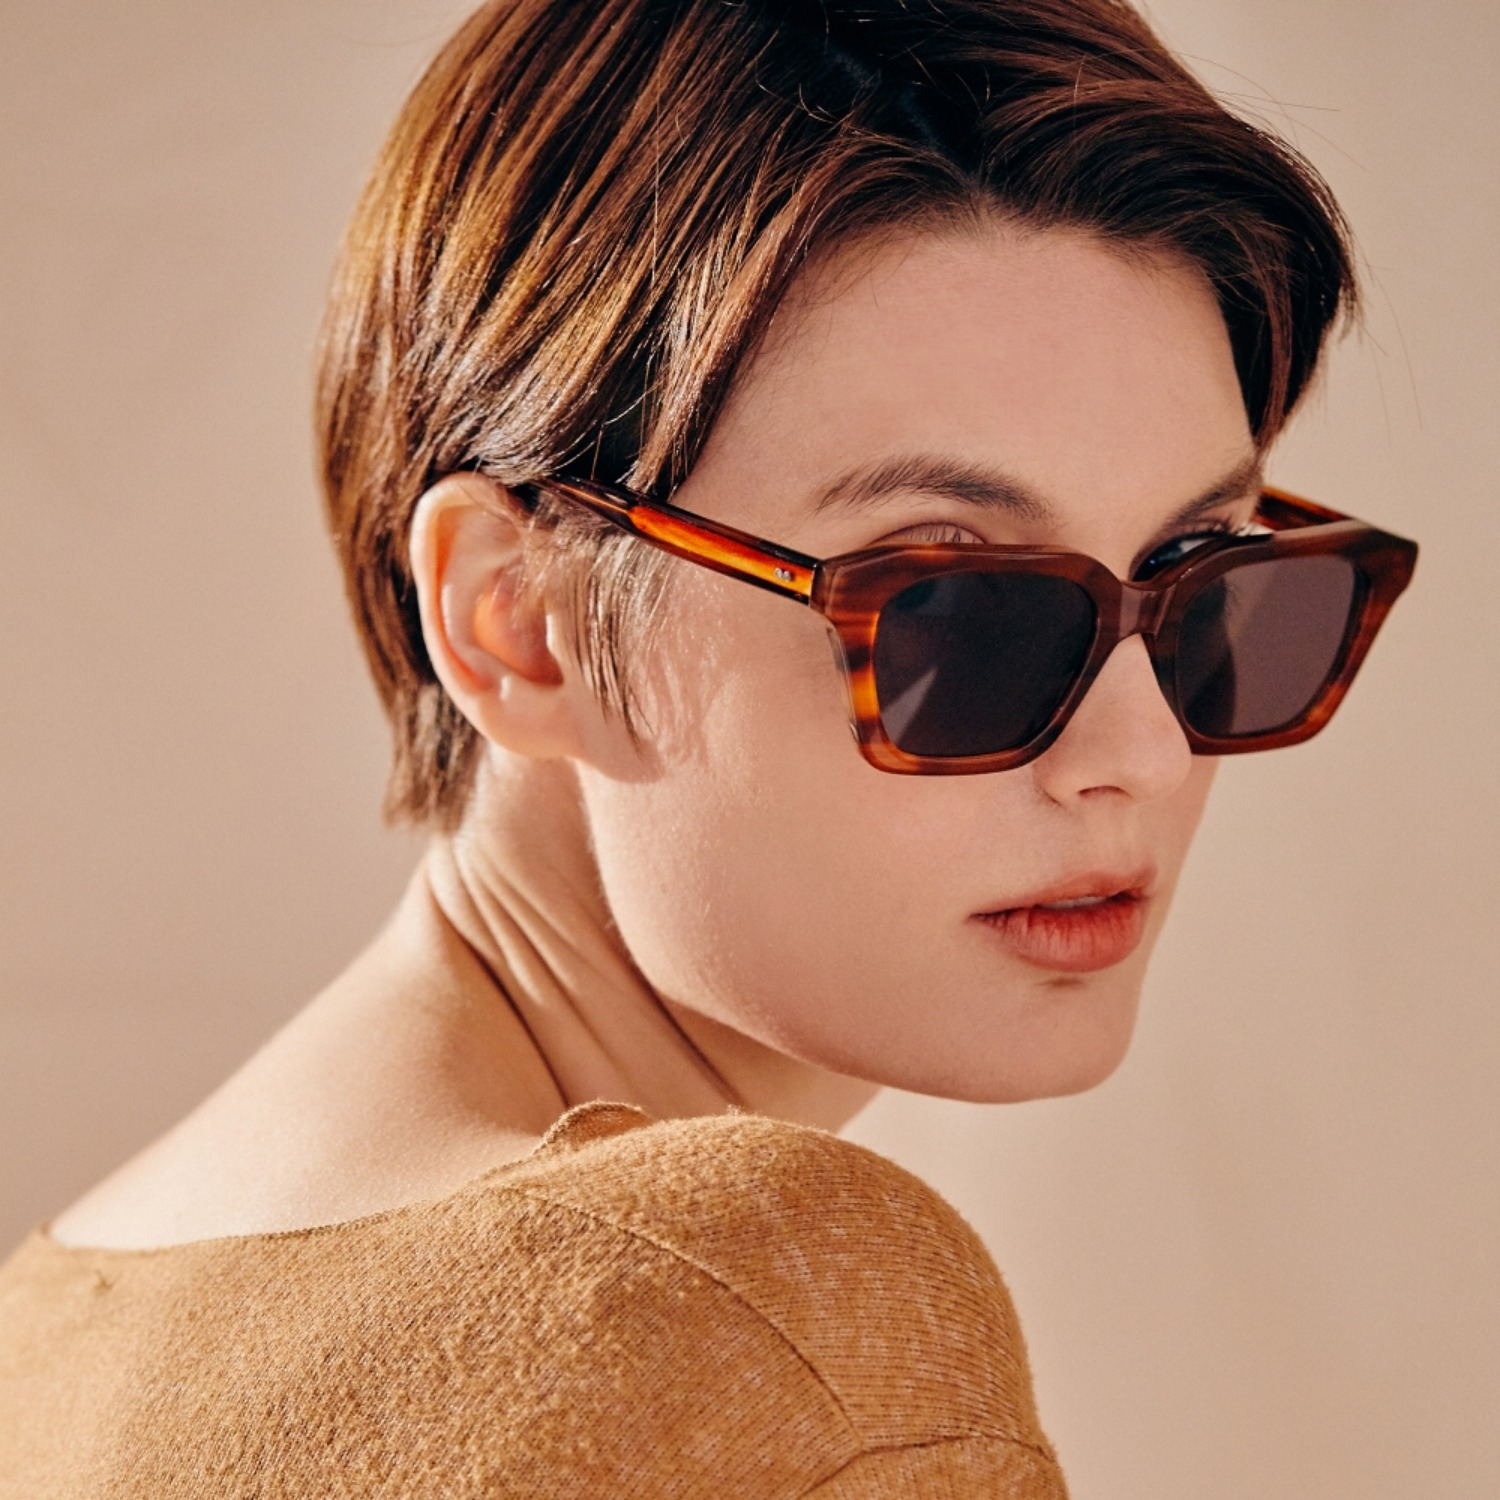 진저아이웨어 안경 My 74% Tiger brown GINGER EYEWEAR